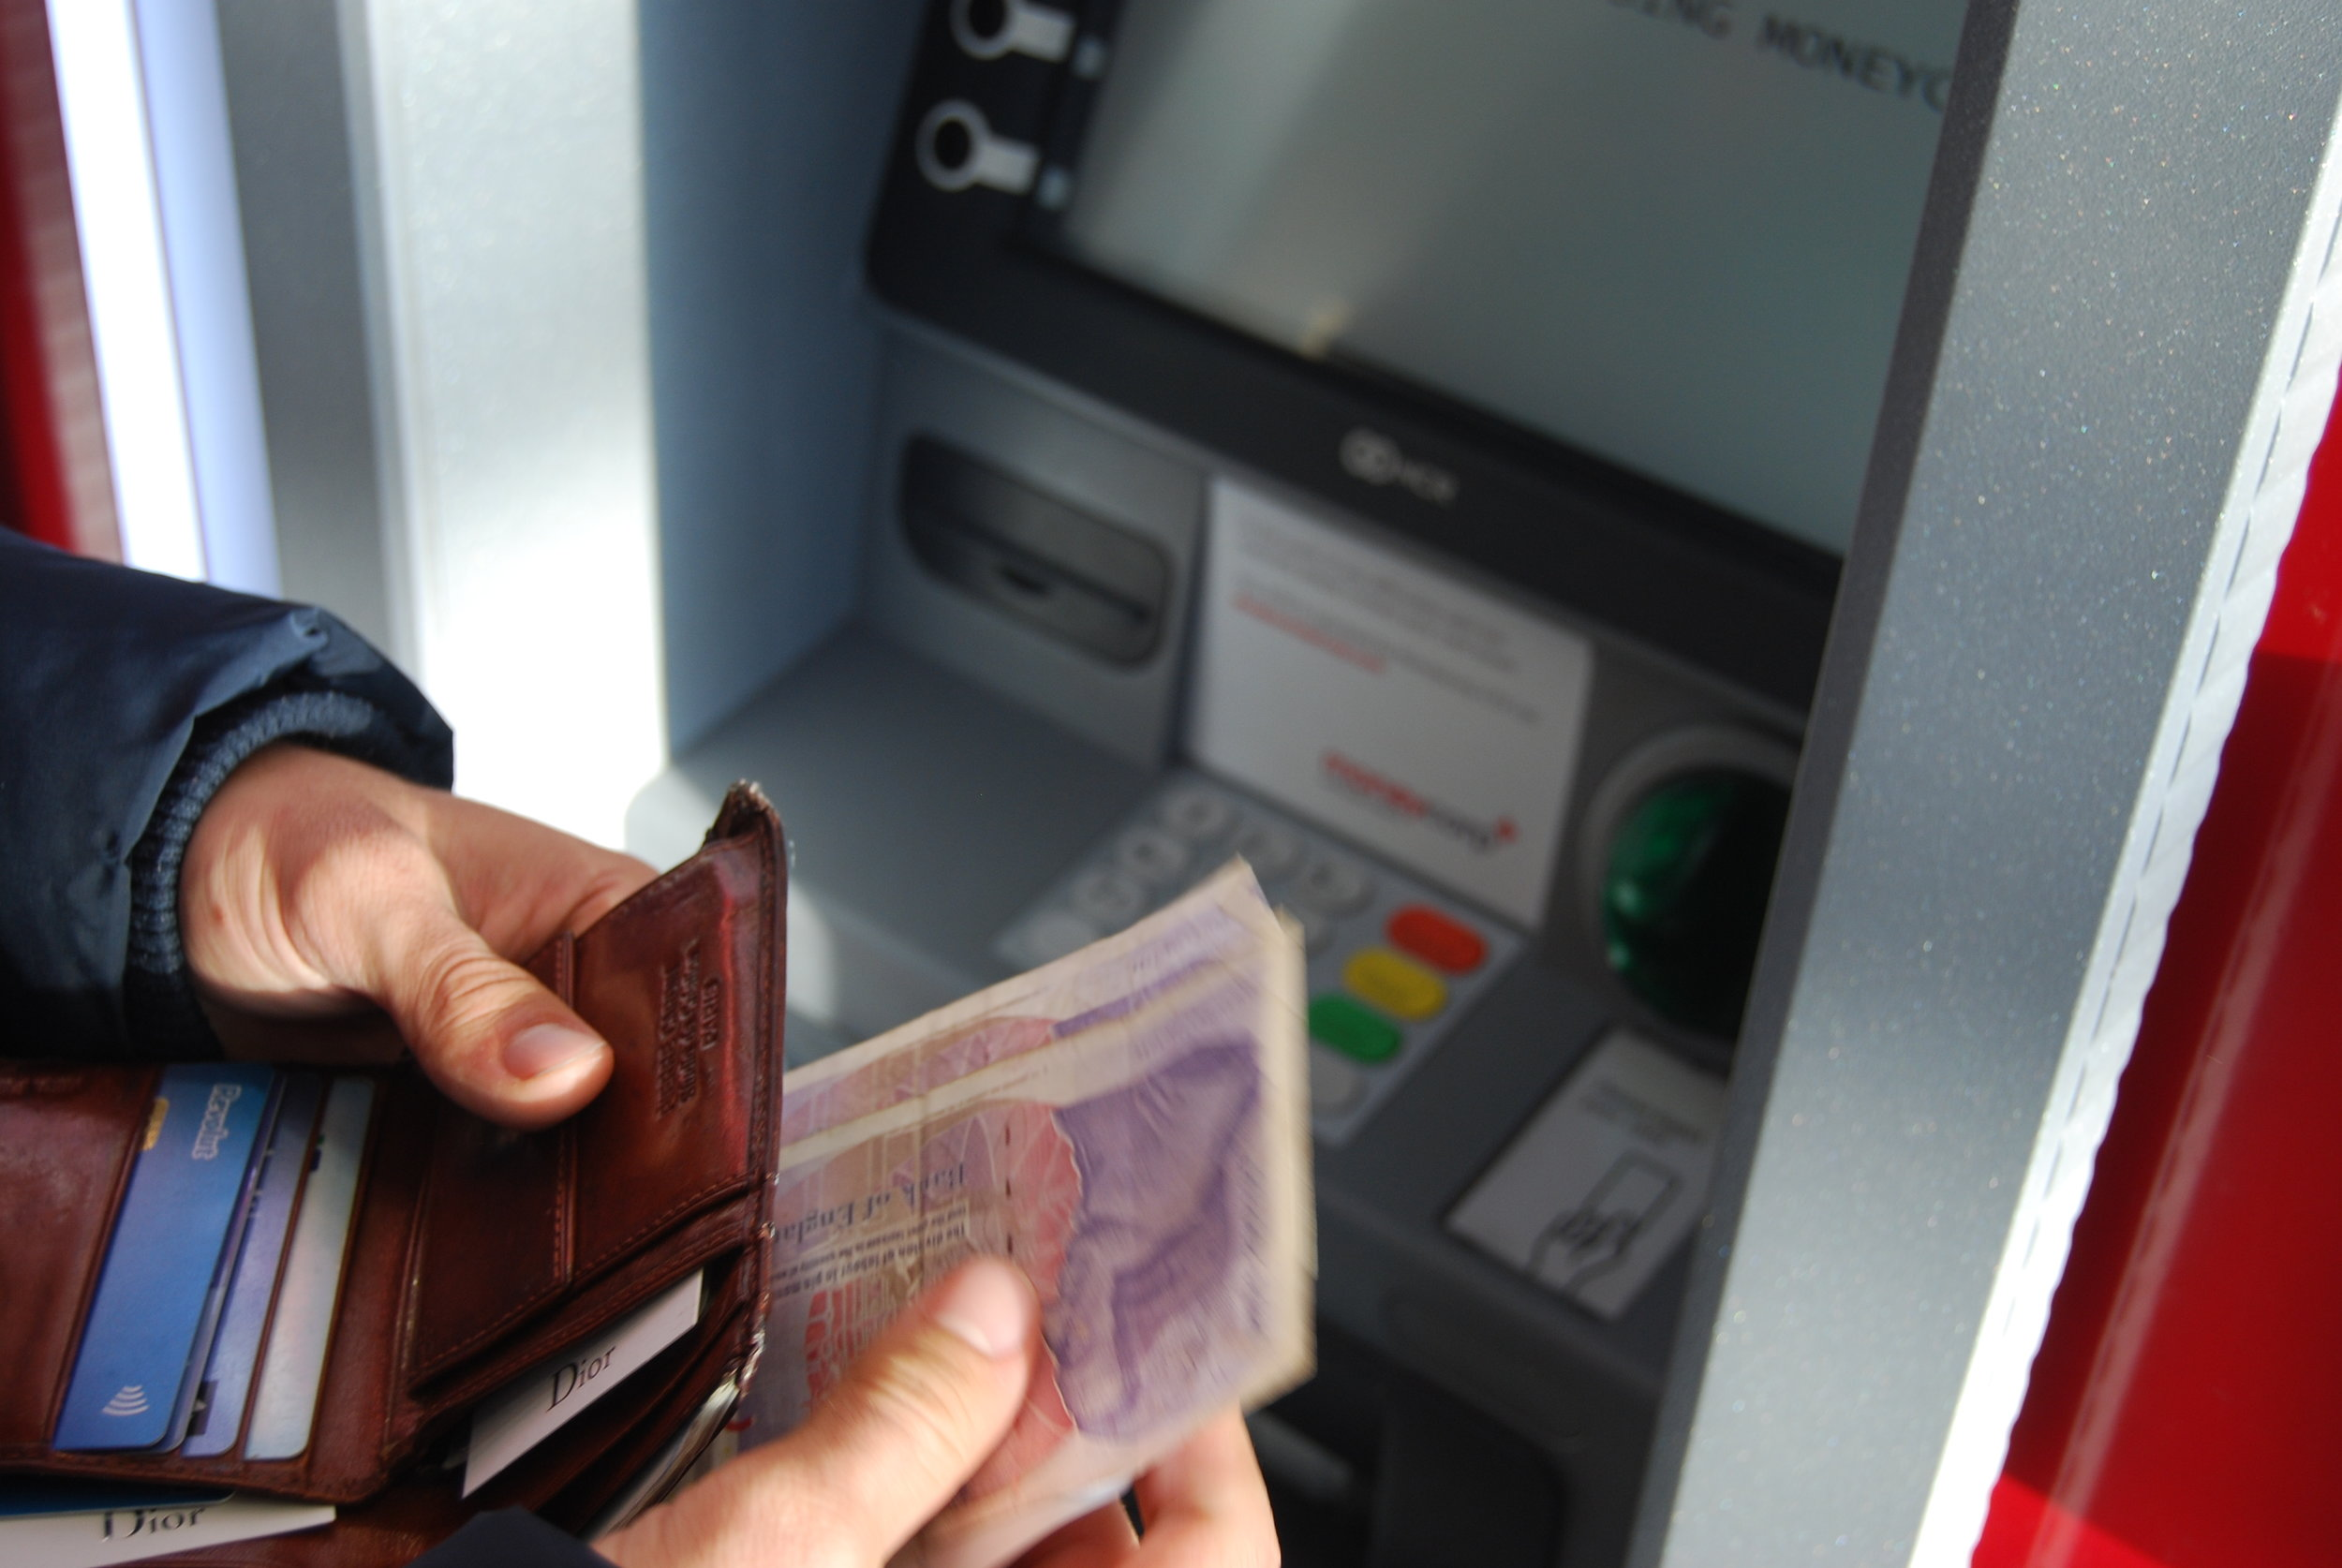 ATM's will always be your best bet for withdrawing money. ALWAYS!